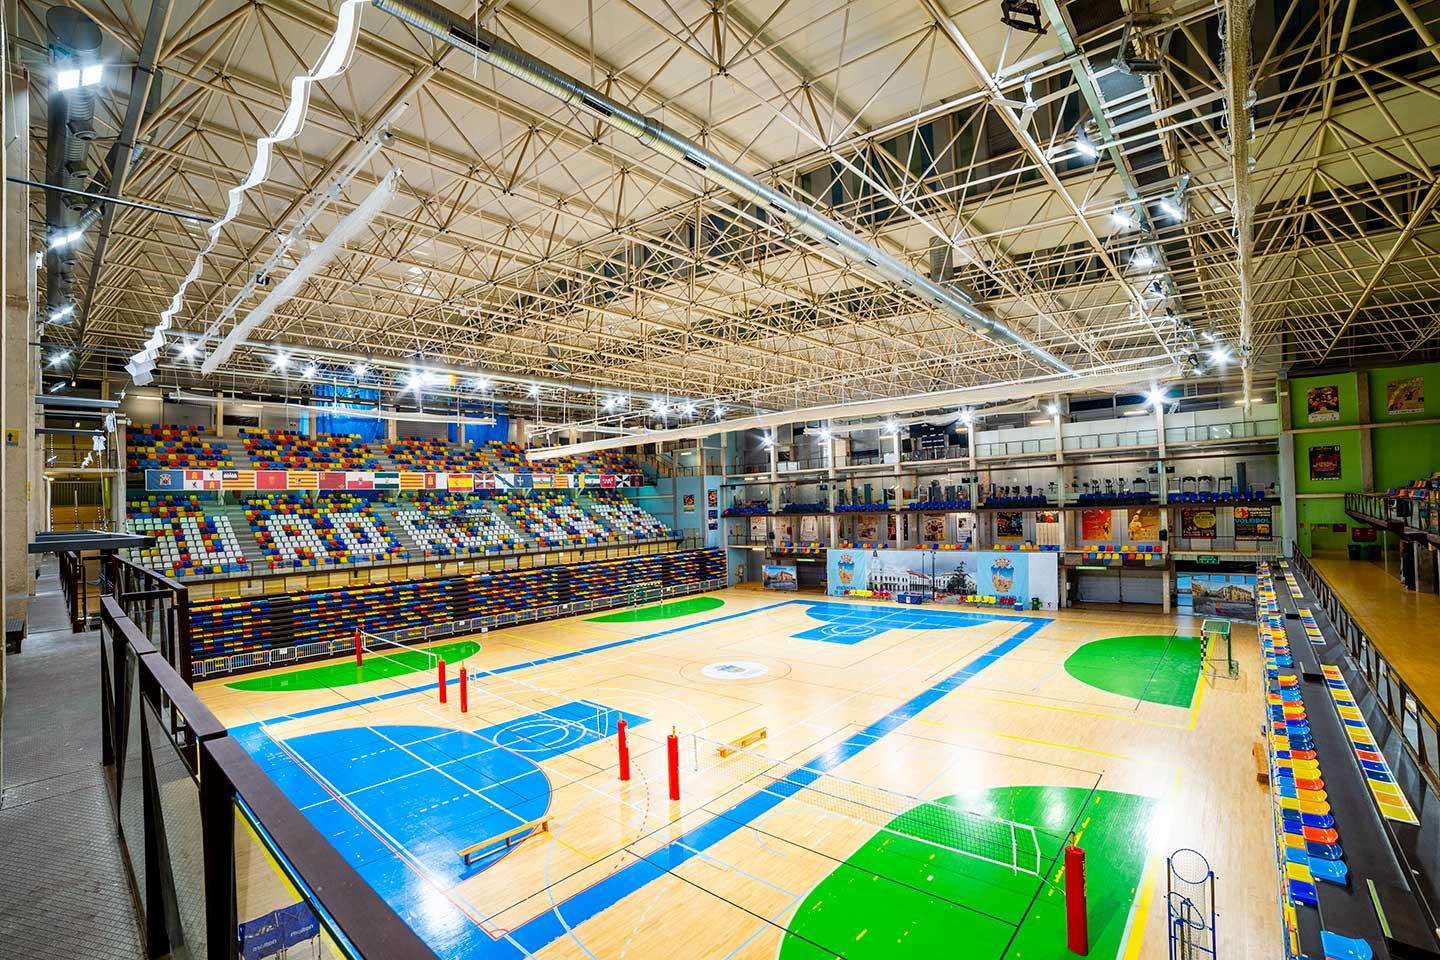 Sports lighting solutions for 12 facilities has reduced costs by 55% for the city of Guadalajara